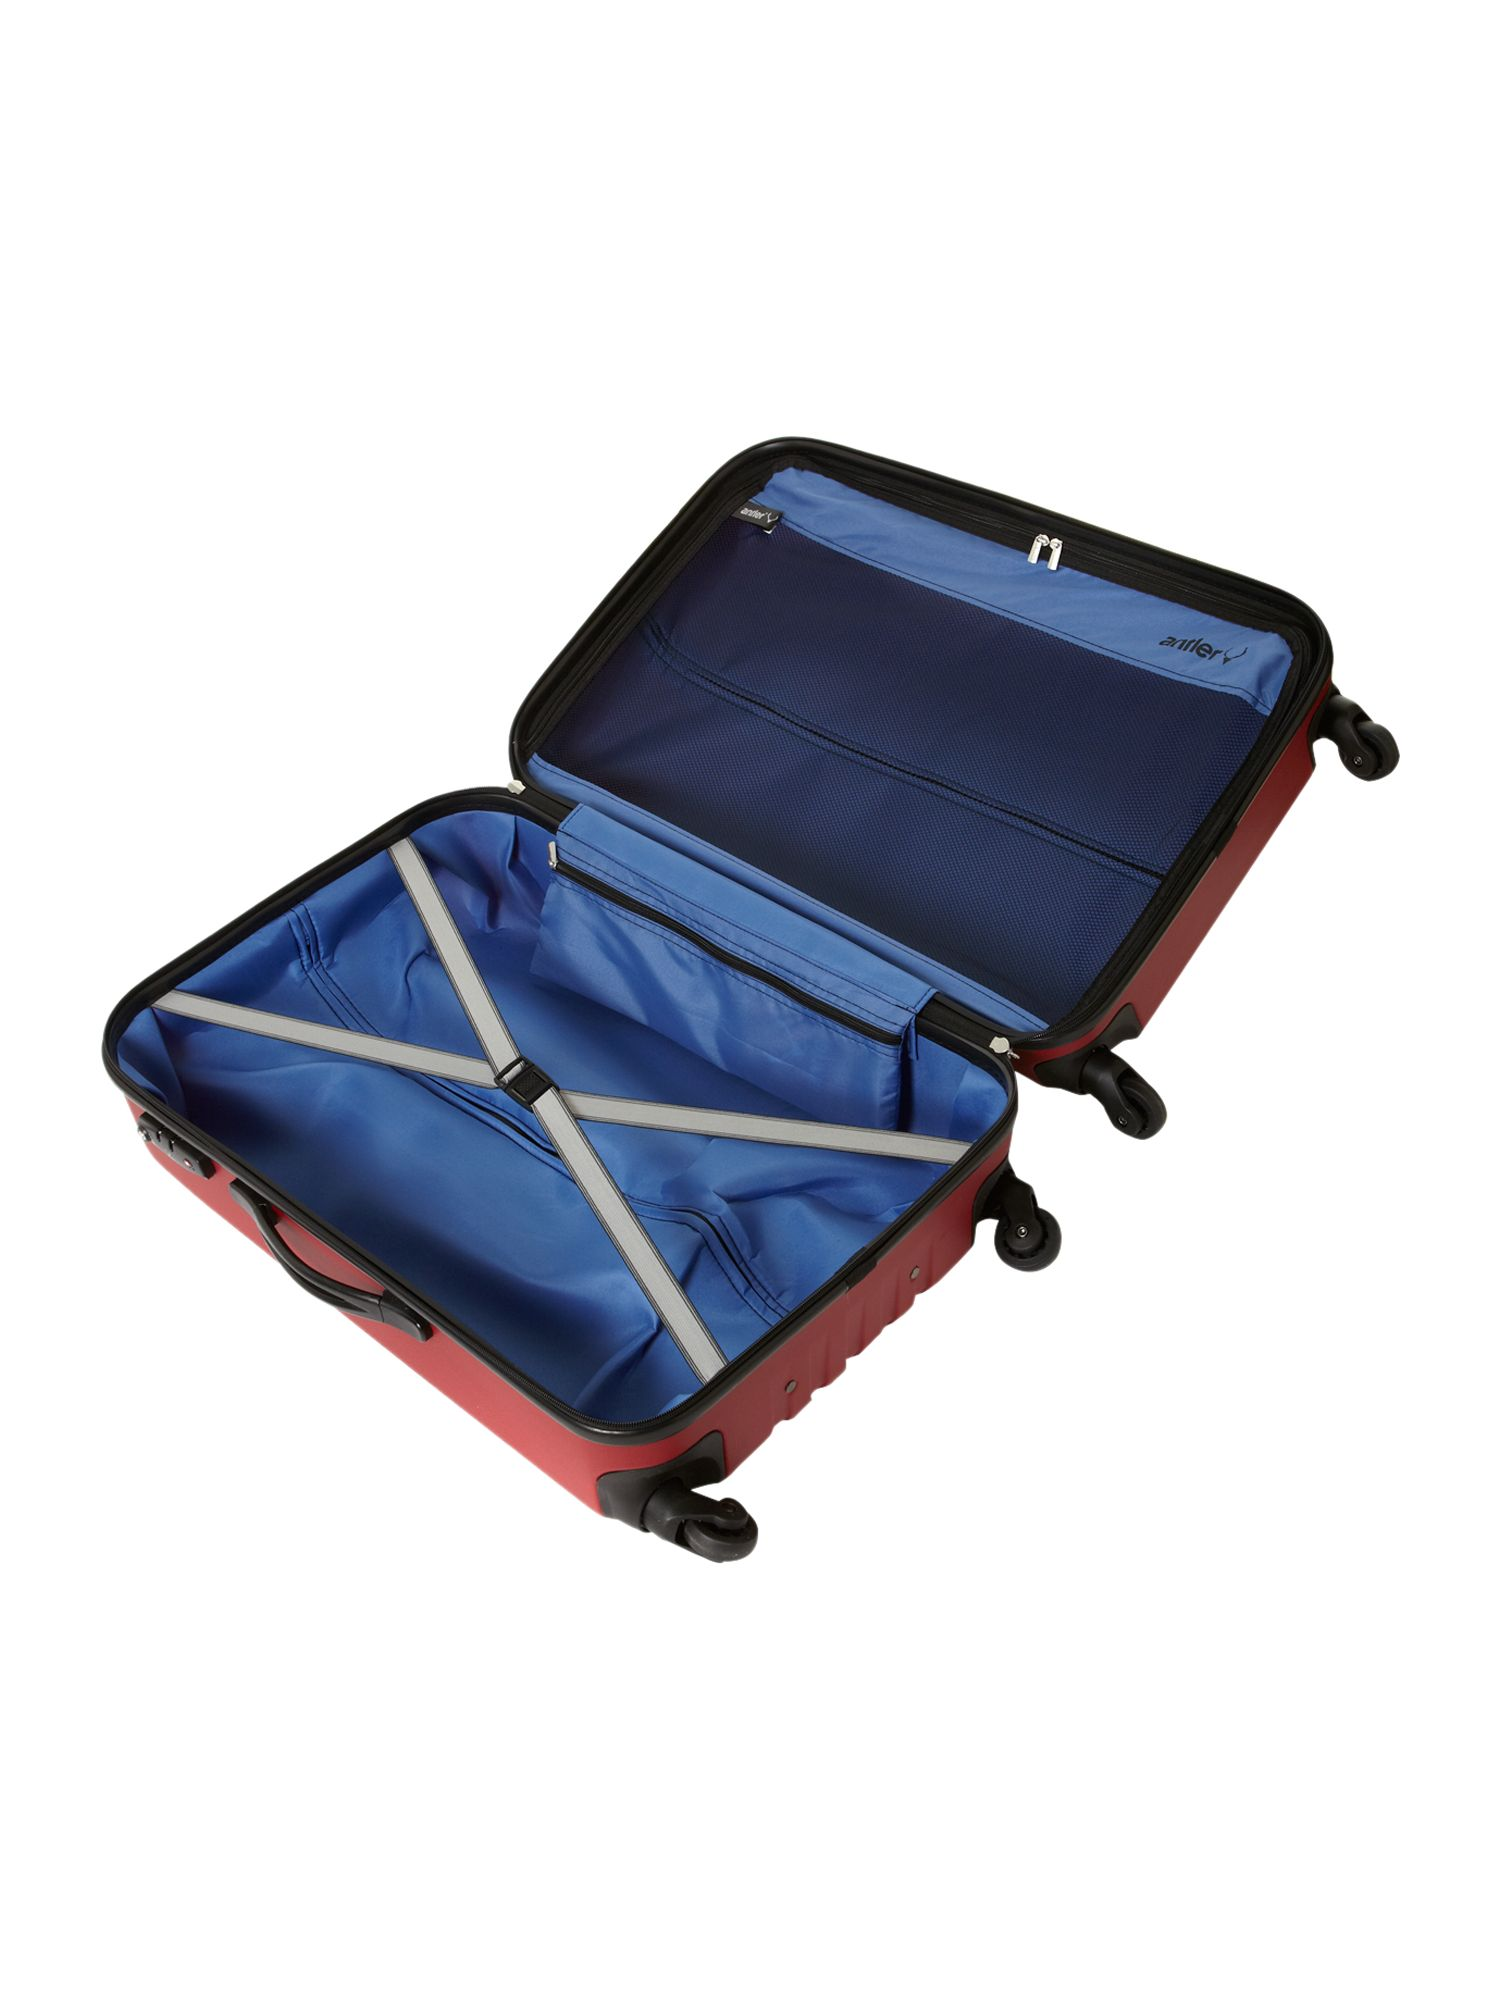 Quadrant 4weel medium suitcase in red